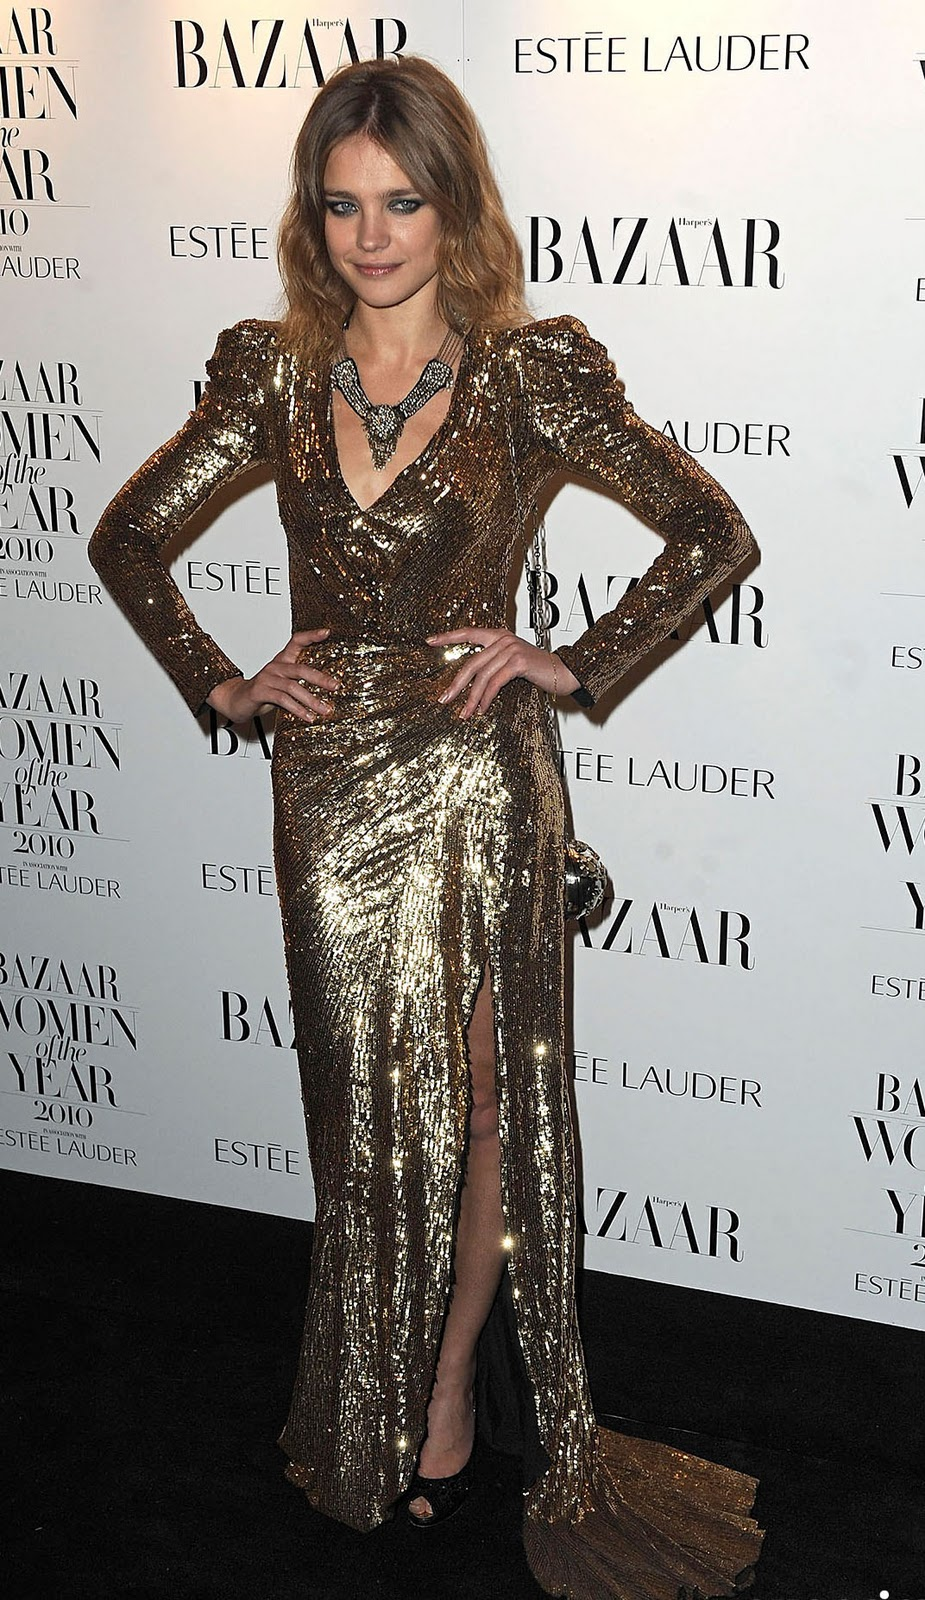 1ac1a75fe8 Russian model Natalia Vodianova attended the Harper s Bazaar Women Of The  Year Awards earlier this month in a gold sequin Balmain dress.